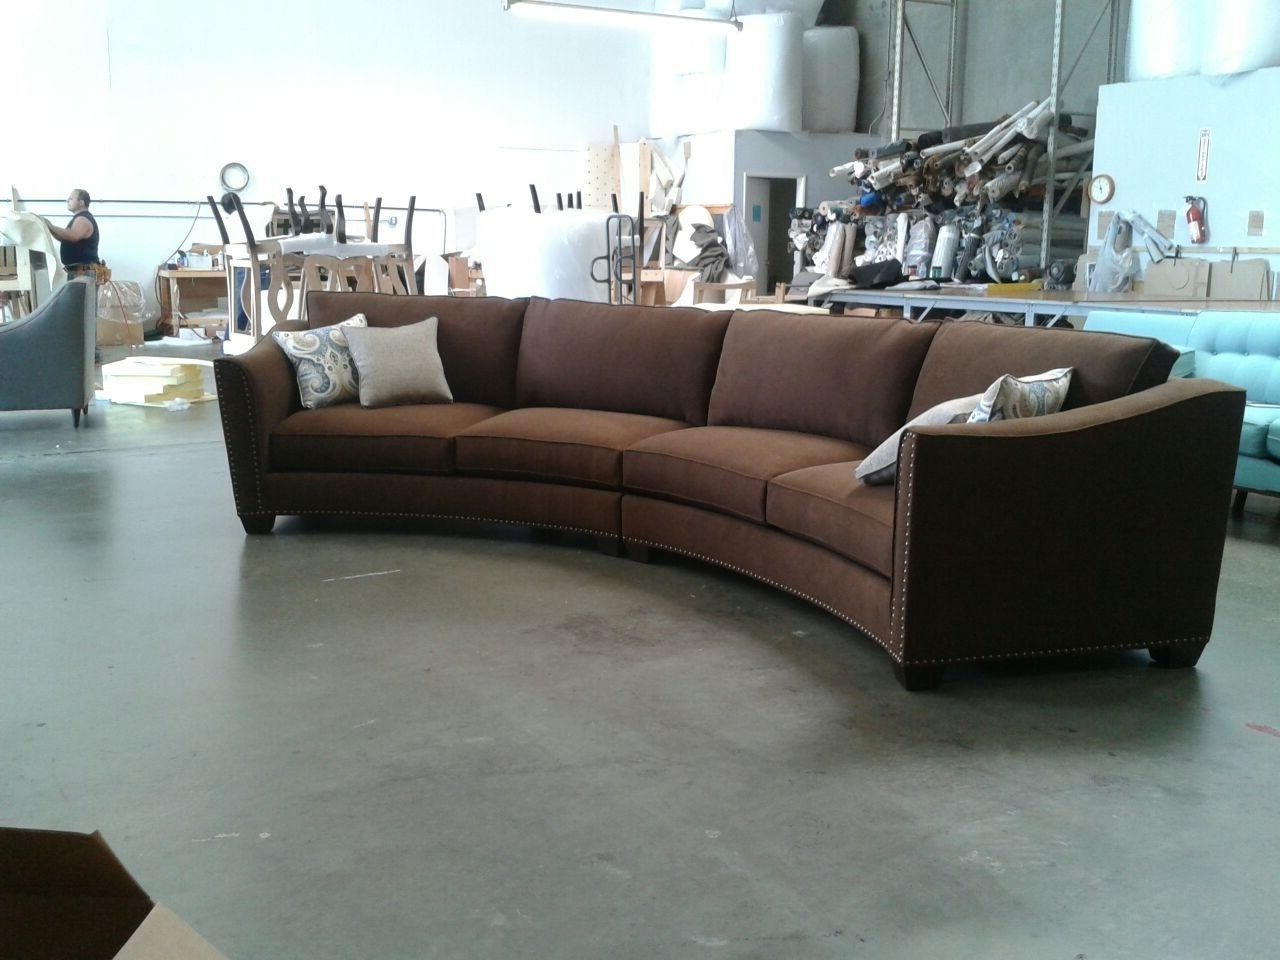 2018 Circular Sectional Sofas Pertaining To Curved Sectional Sofa Set – Rich Comfortable Upholstered Fabric (View 13 of 20)